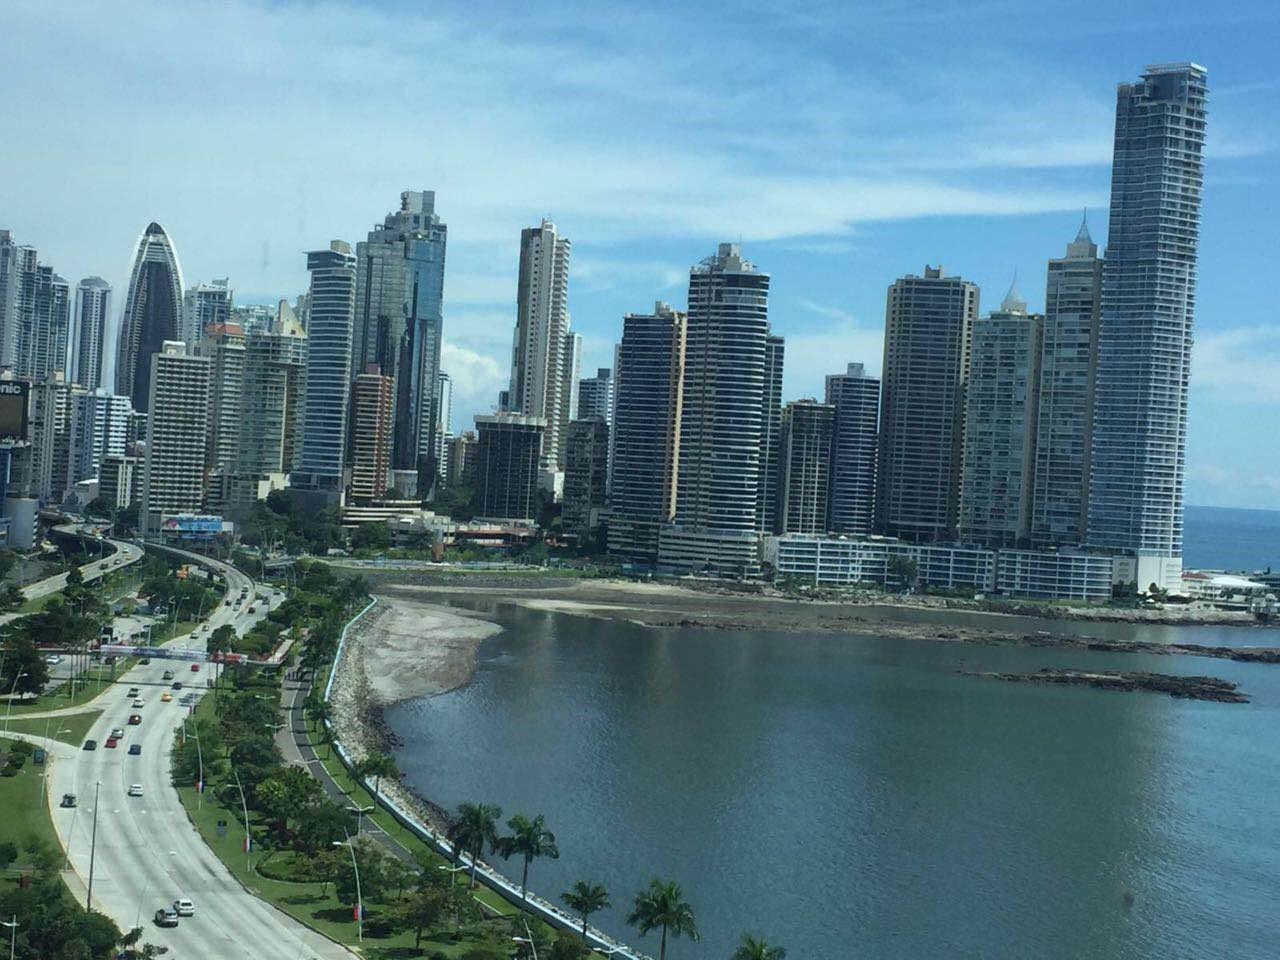 Life In Panama City is full of opportunities for expats to live a life in style.